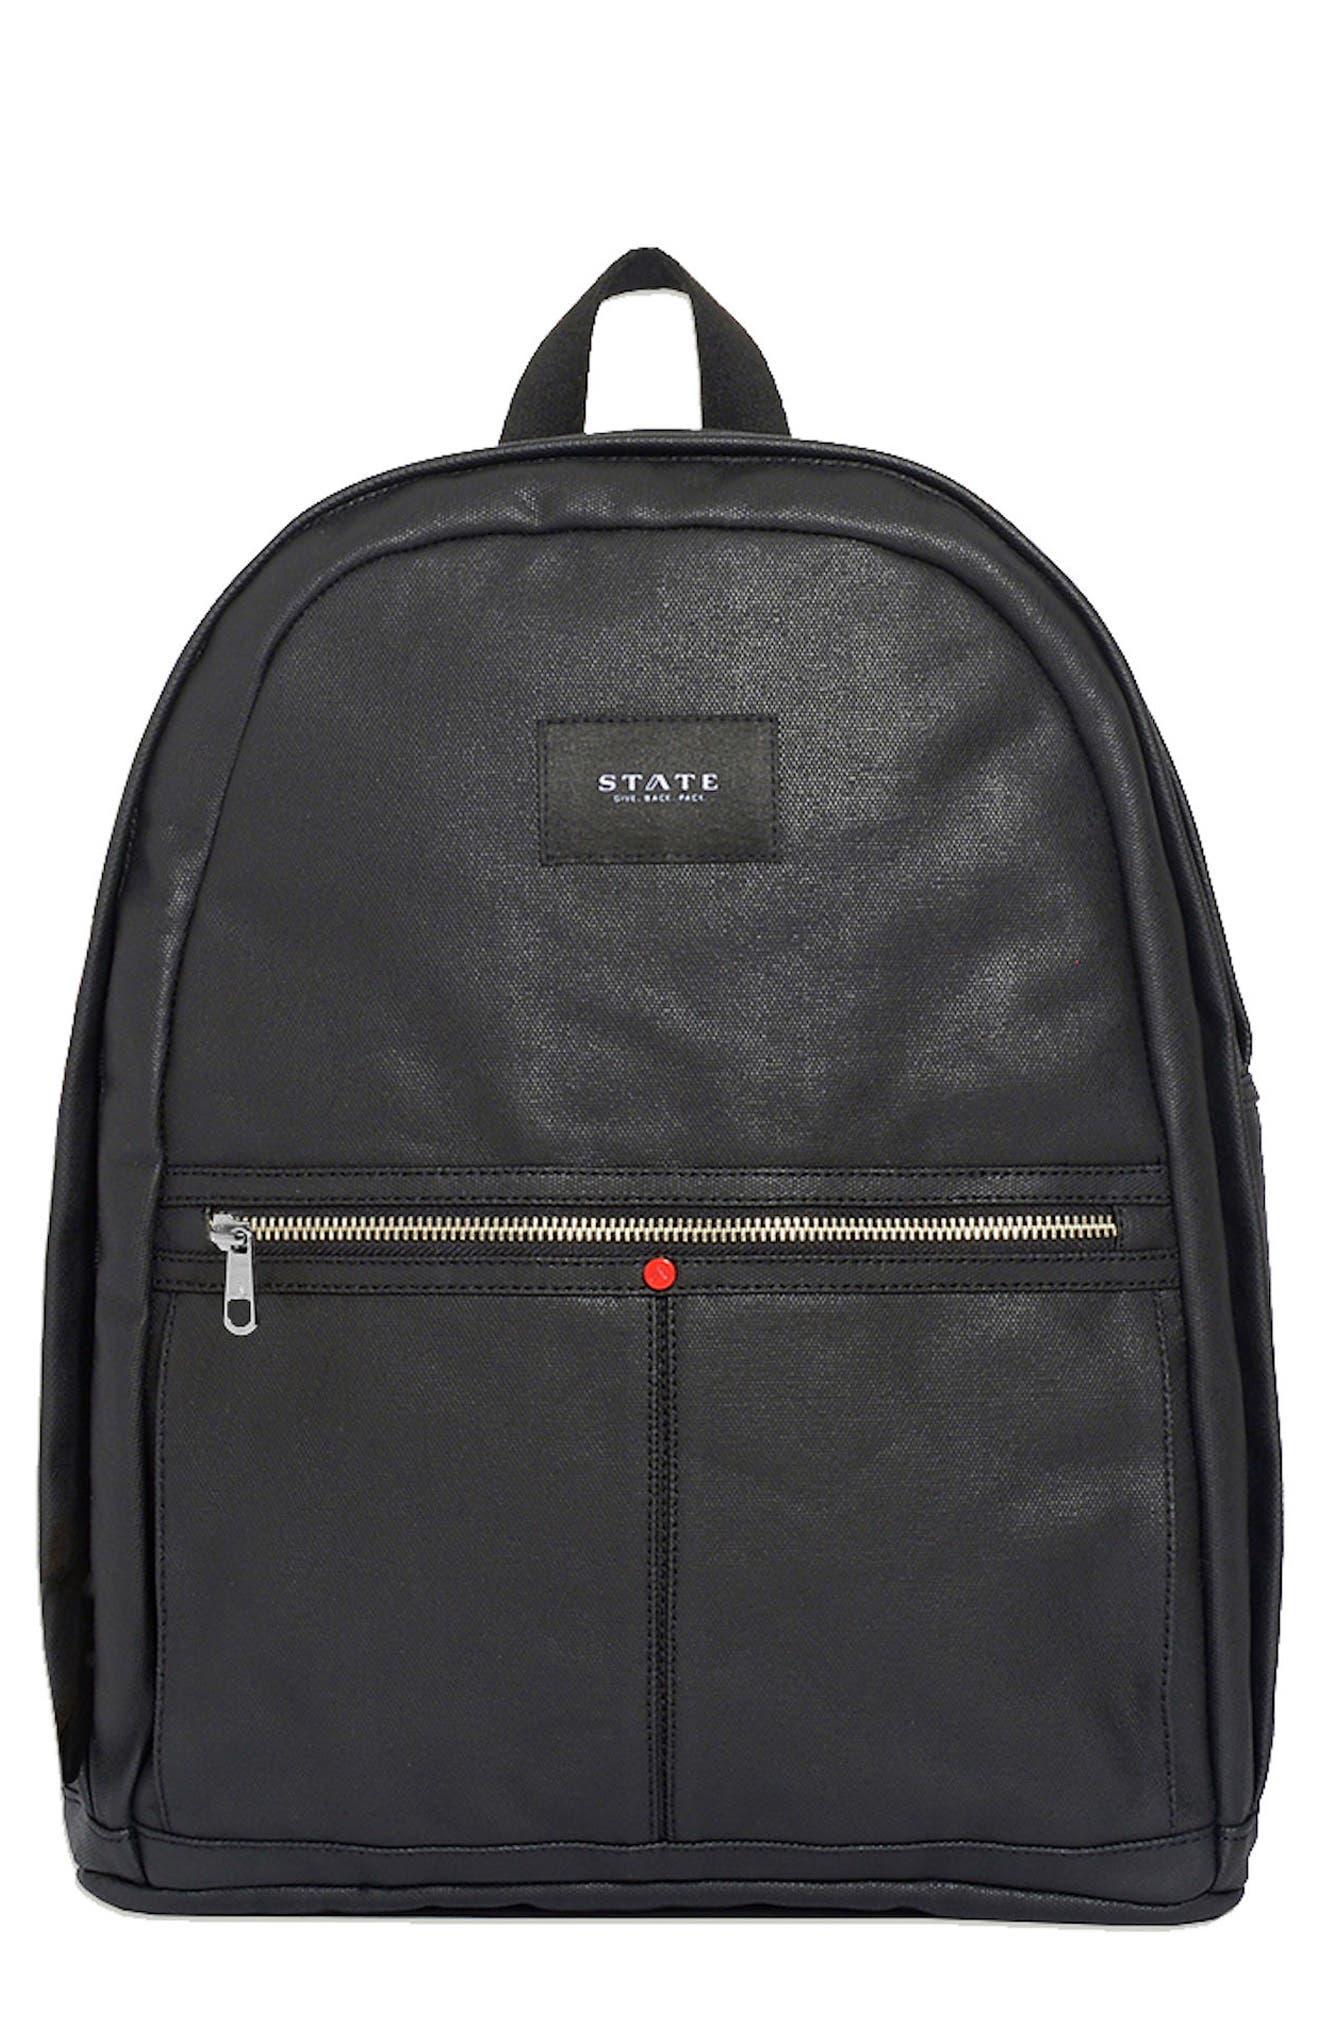 Greenpoint Kent Backpack,                             Main thumbnail 1, color,                             001